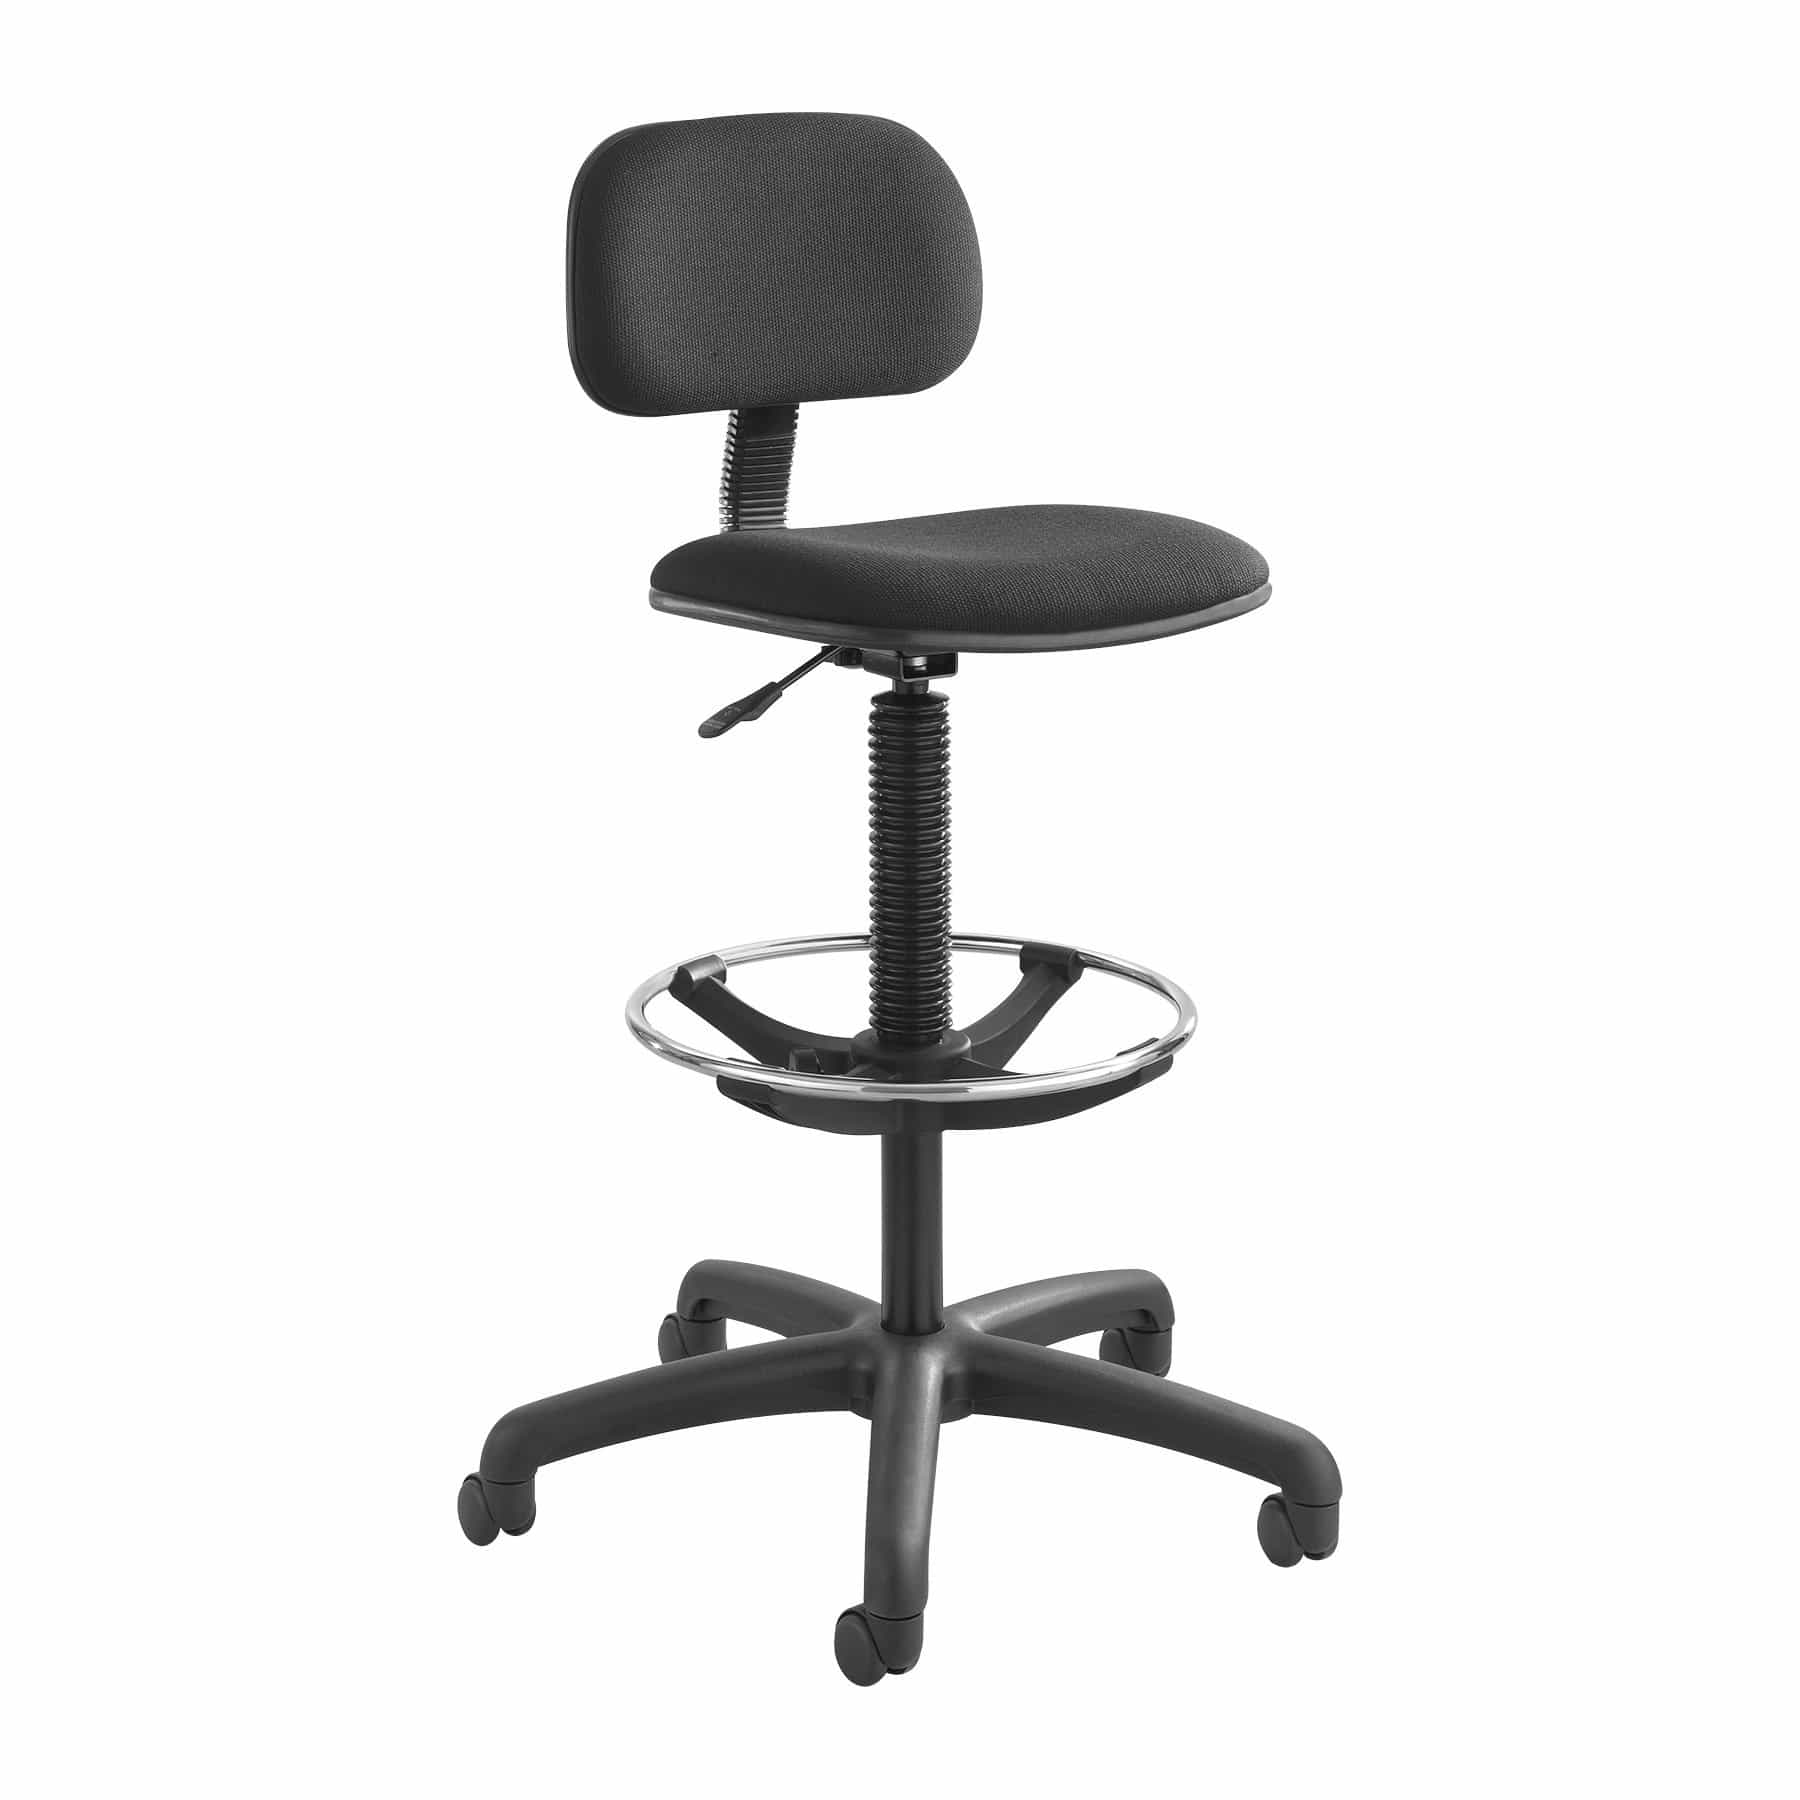 bedinhome - 3390BL Zippi 250 Lbs Weight Capacity Adjustable Chrome Footring Swivel Economical Extended-Height Black Drafting Chair - Safco - Drafting Chair